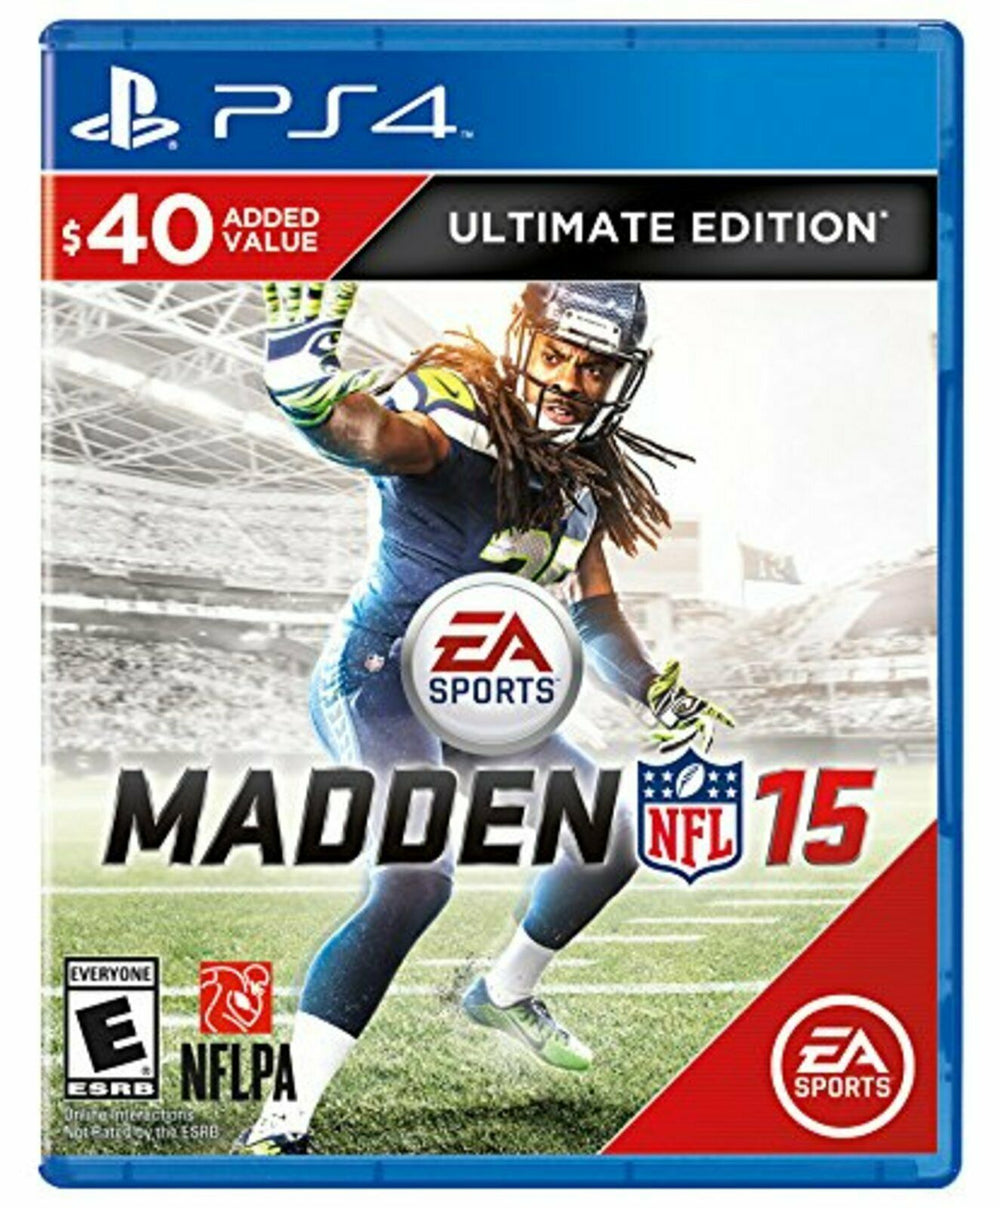 PS4 - Madden NFL 15 Ultimate Edition